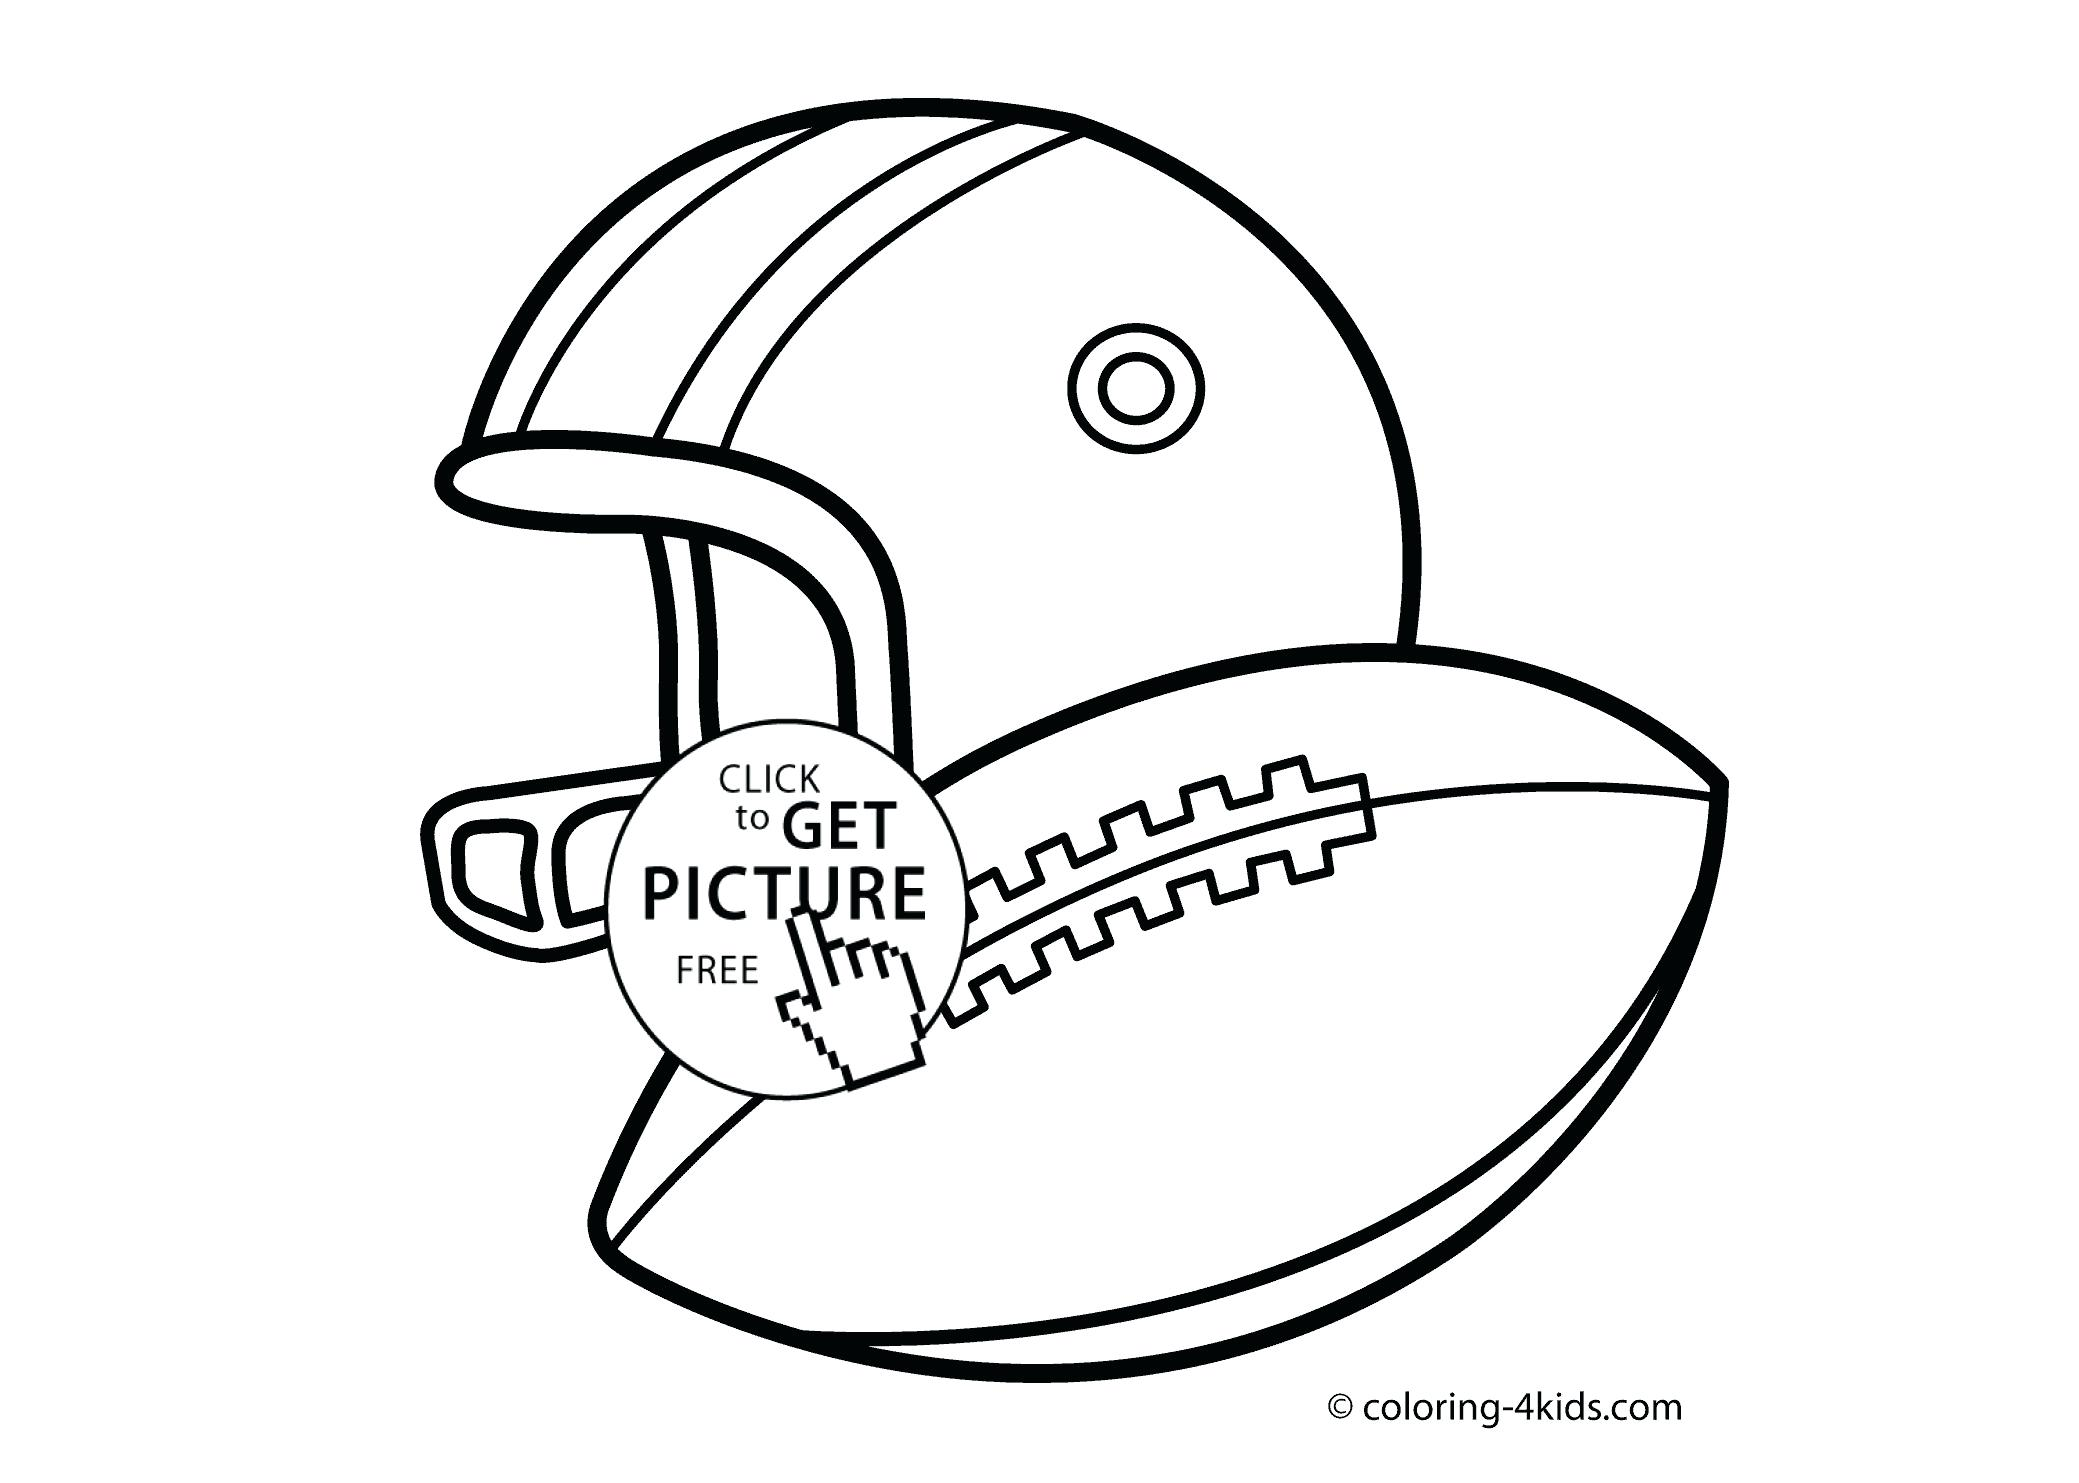 2079x1483 Coloring Pages Soccer Jersey Sport Page For Kids Awesome Sports